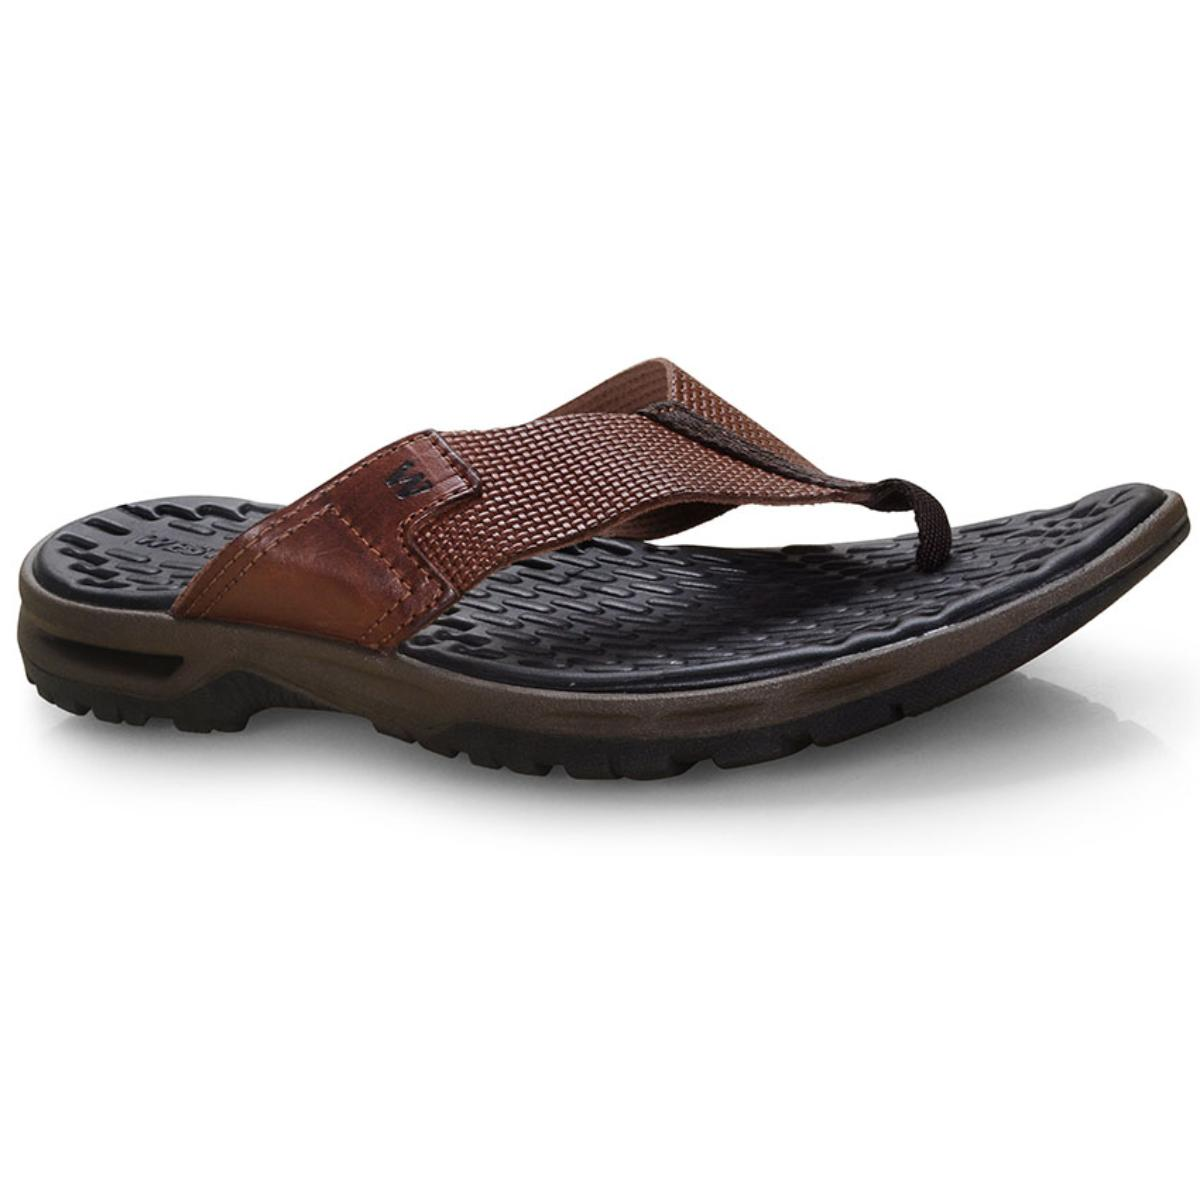 Chinelo Masculino West Coast 188906/cp1 Conhaque